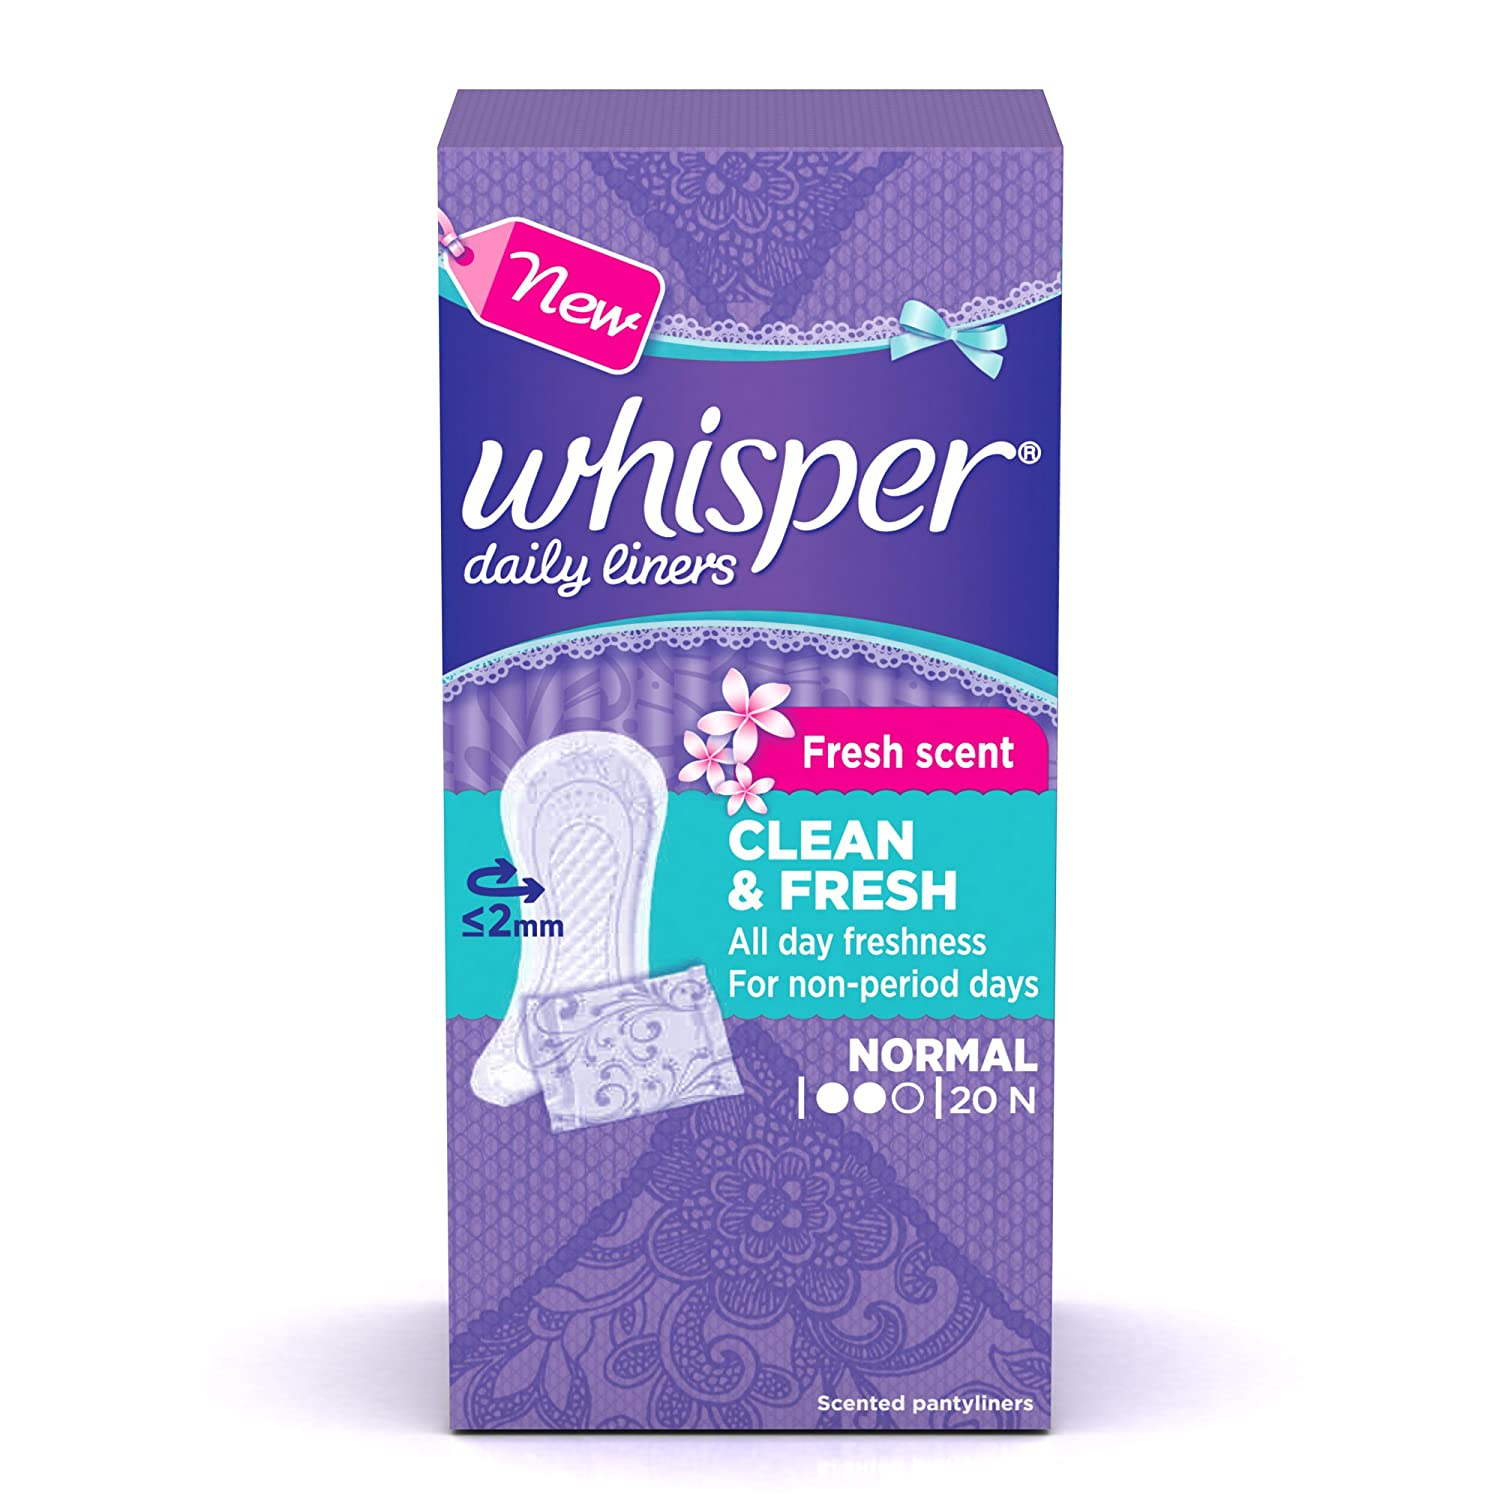 Whisper_Clean_and_Fresh_Daily_Liners.jpg